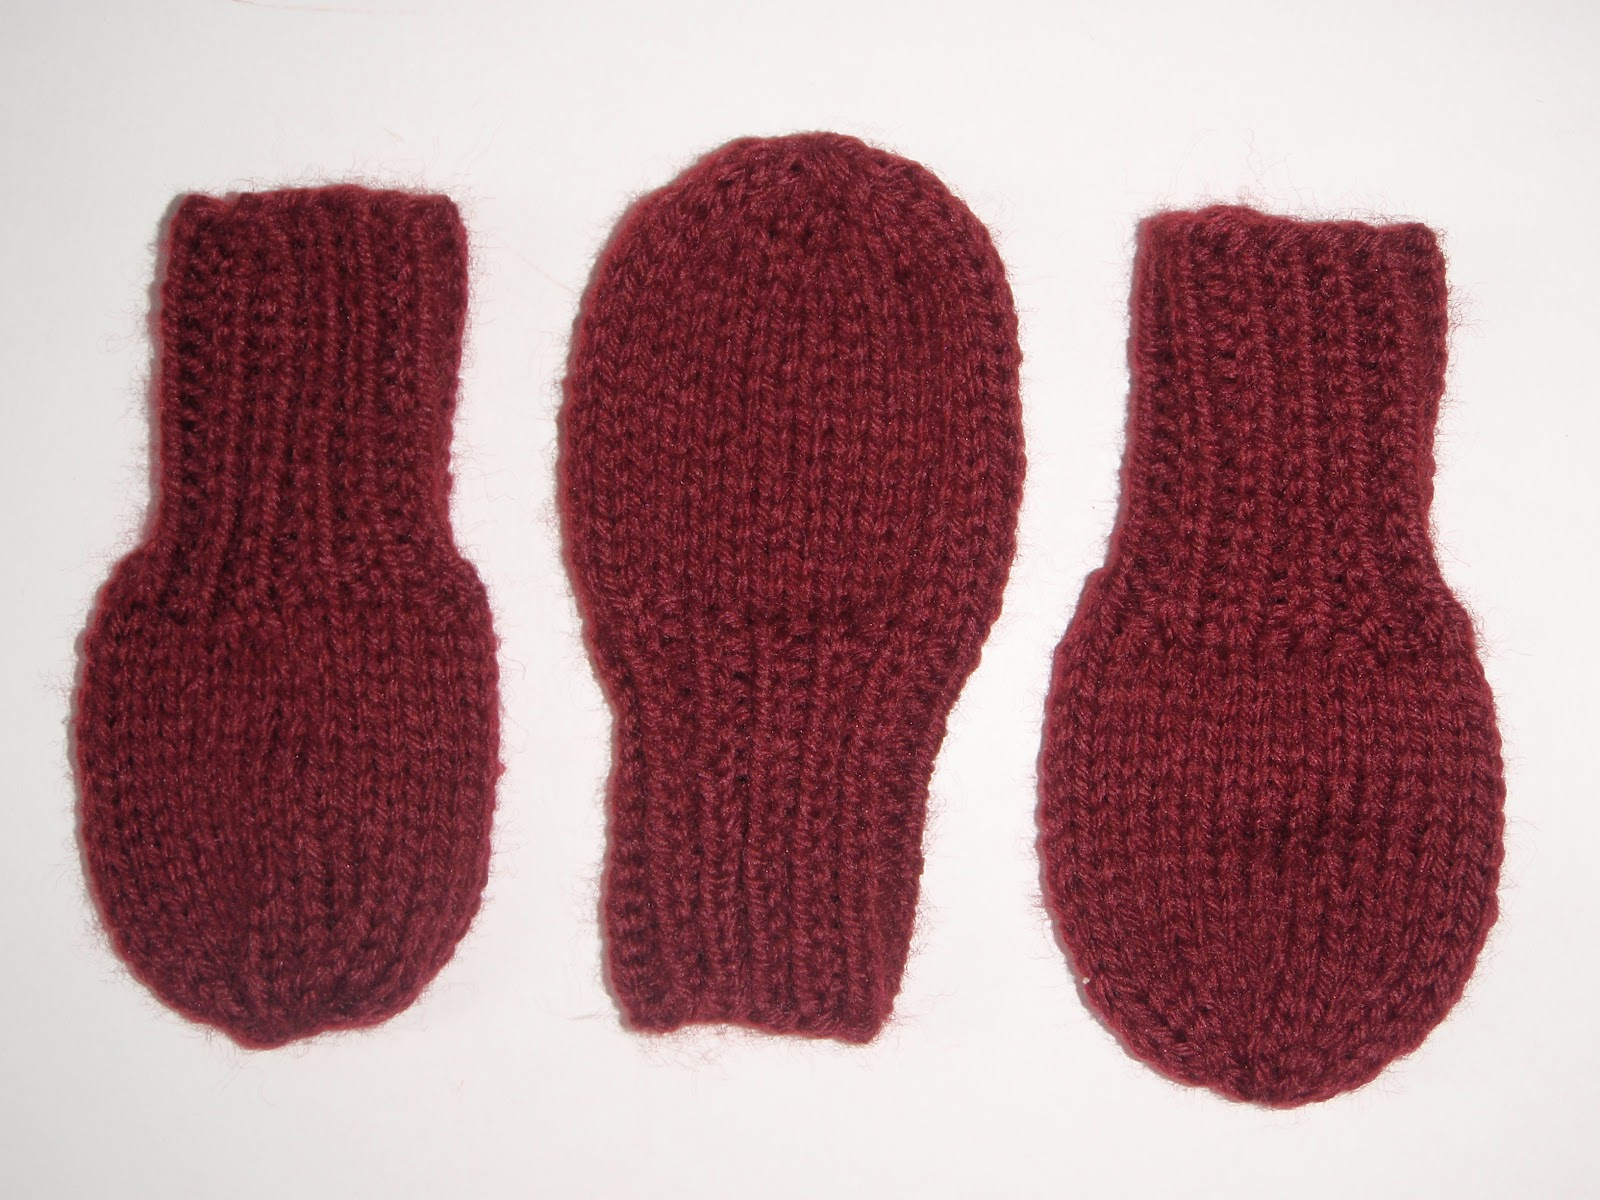 If the knit fits...: FO Friday- Toddler mittens